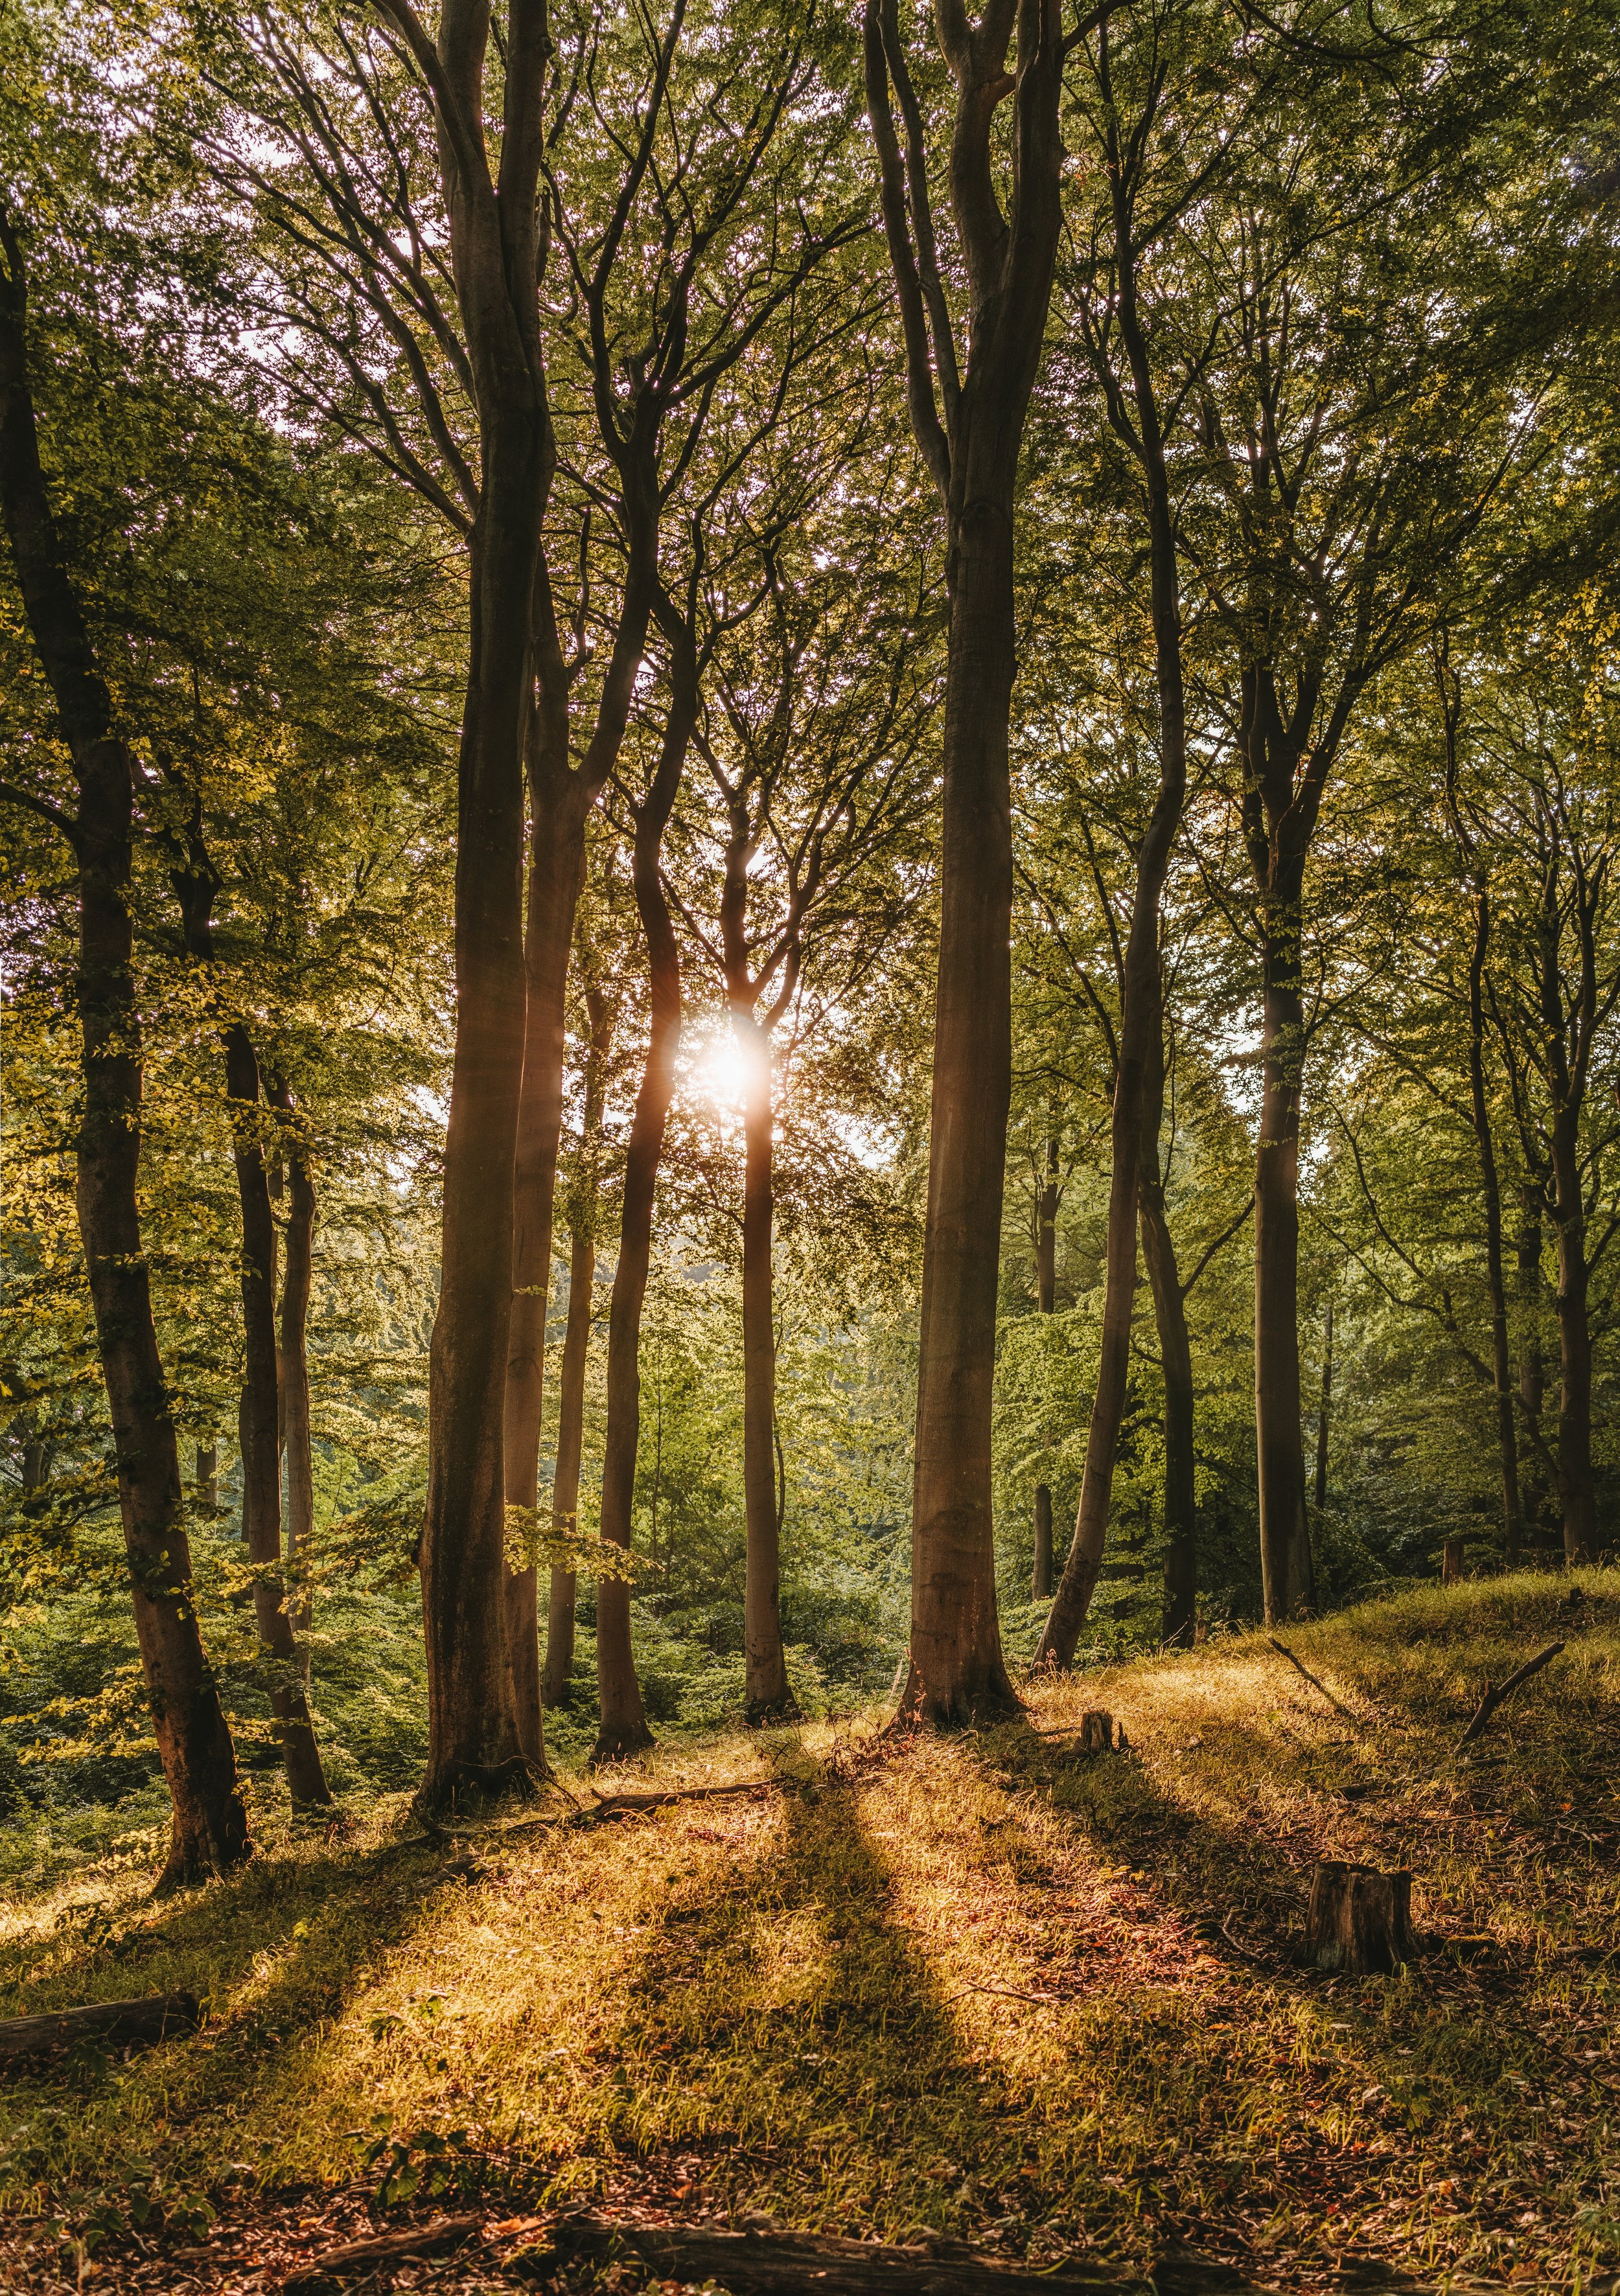 Sun shines through the leaves of a thickly wooded area.  Photo by  Felix Mittermeier  from  Pexels